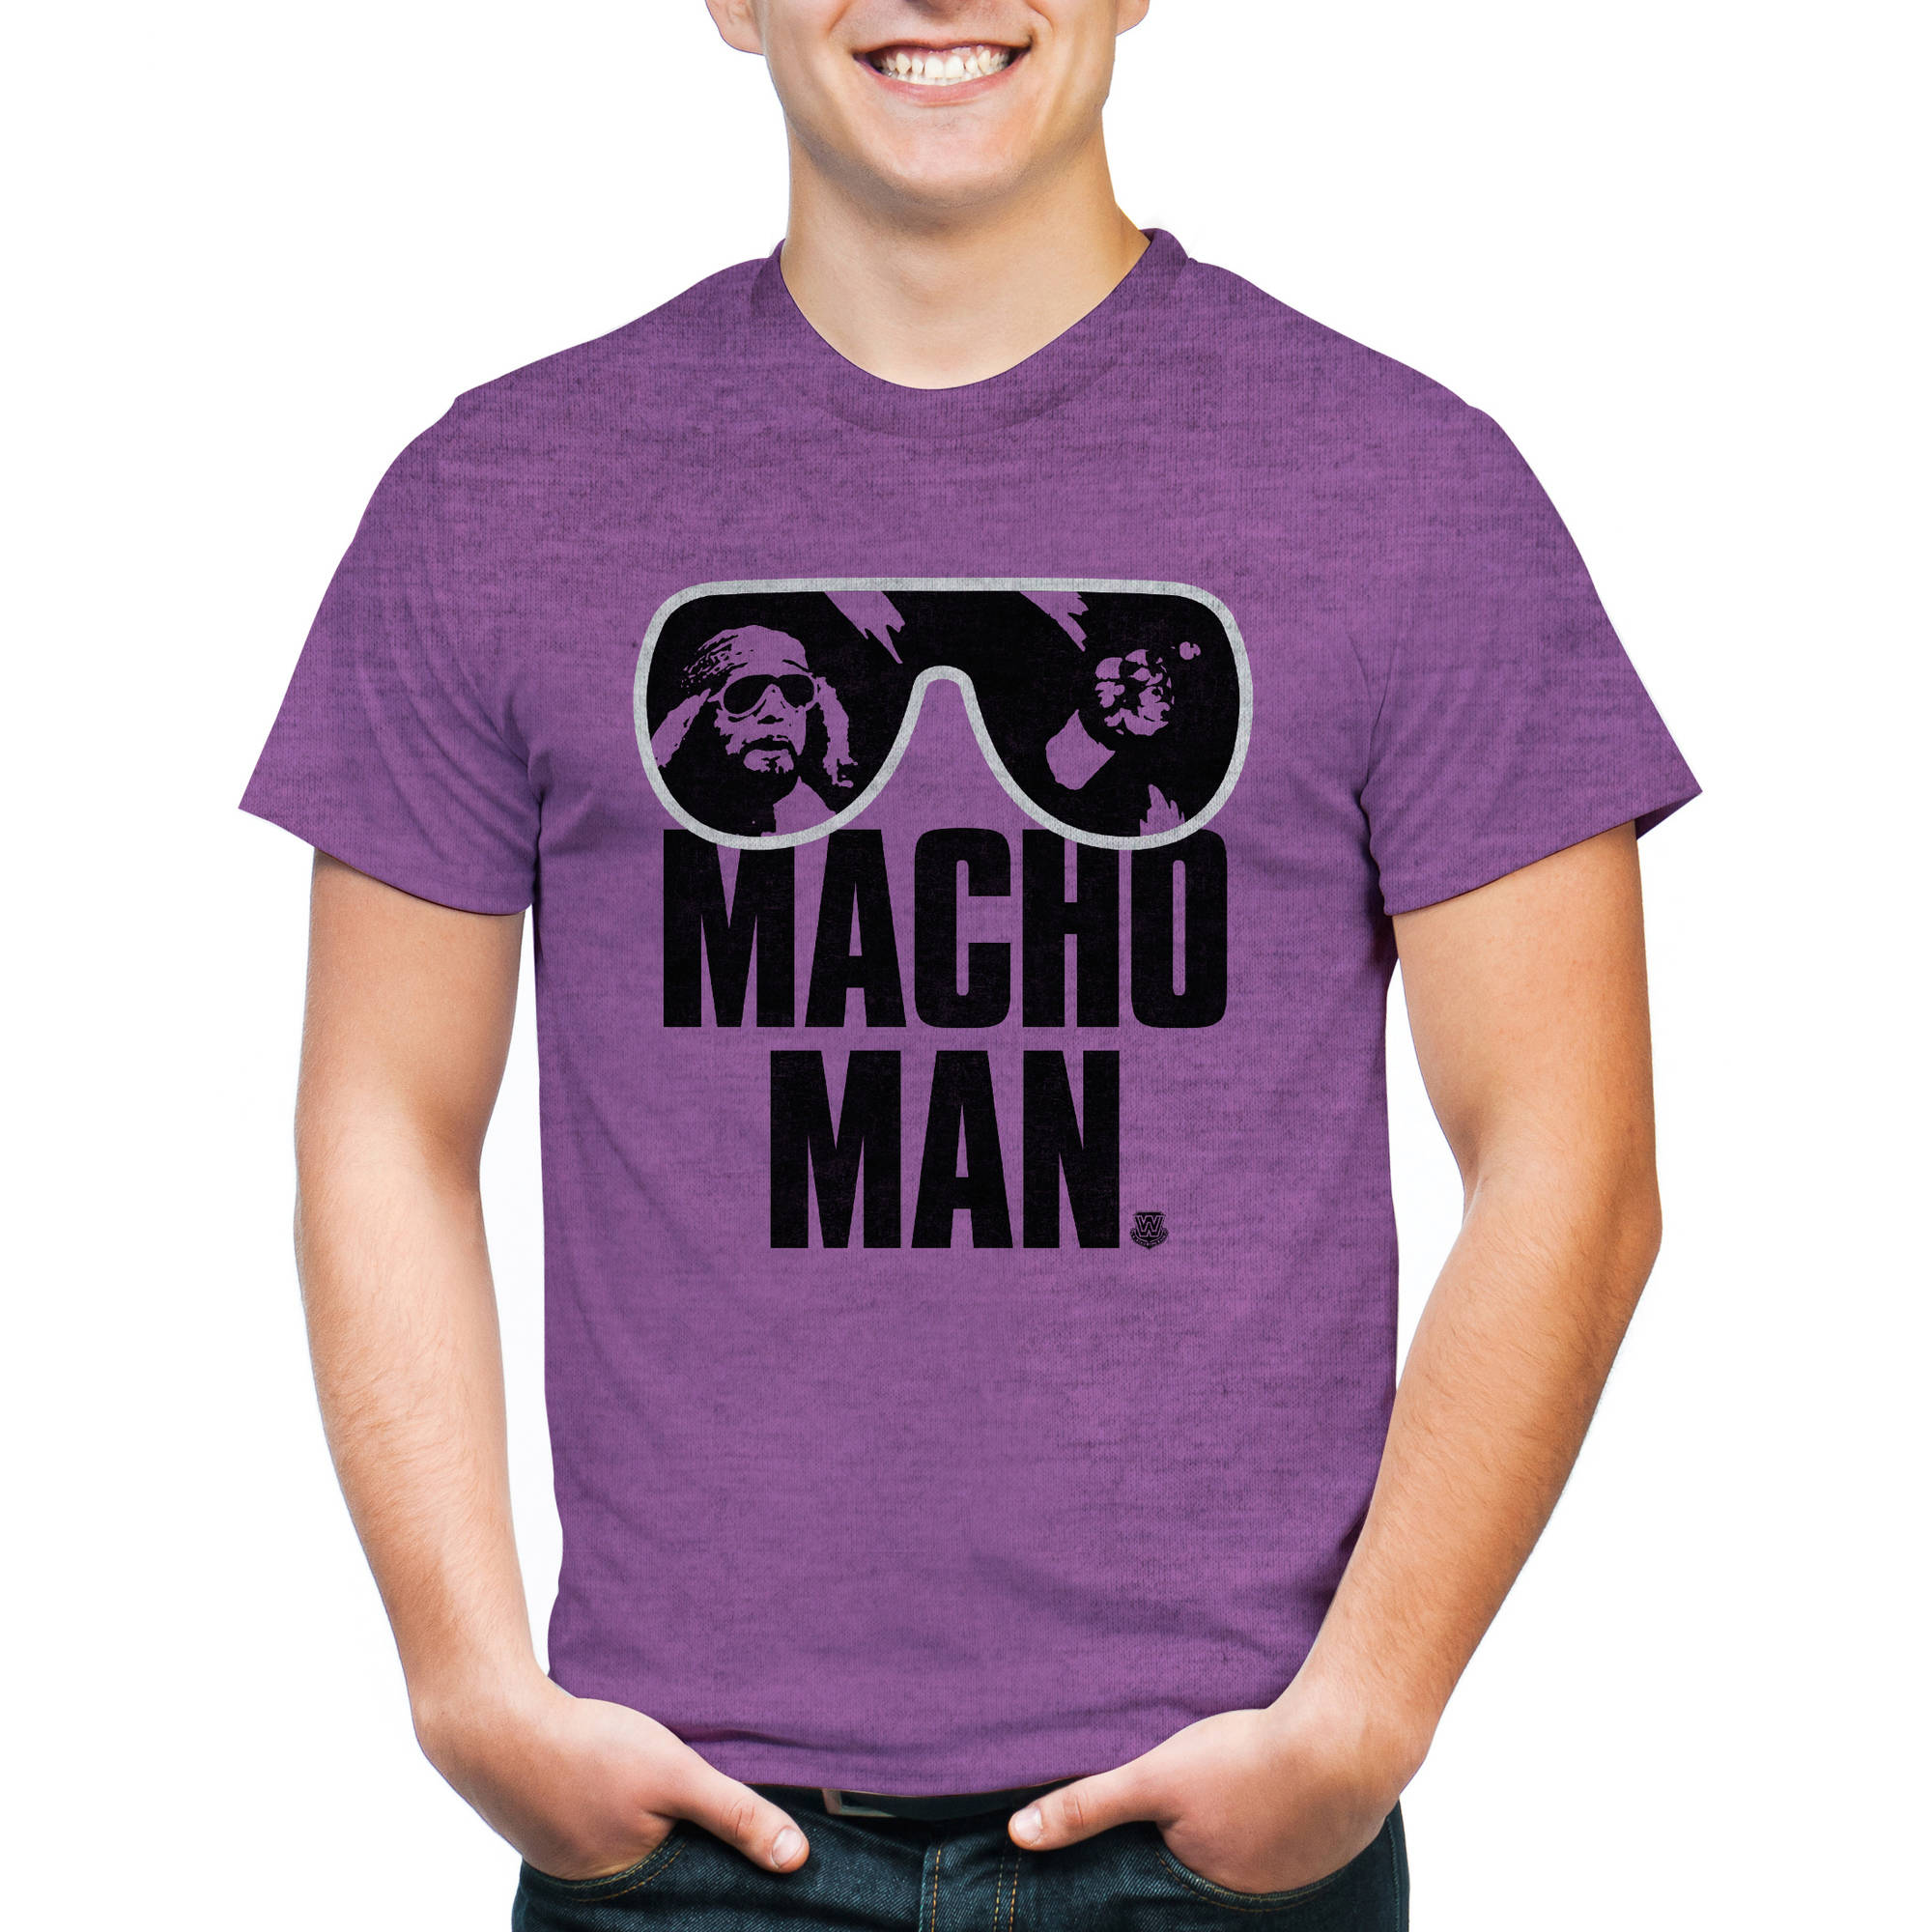 WWE Macho Man Authentic Men's Graphic Short Sleeve T-Shirt, 2XL